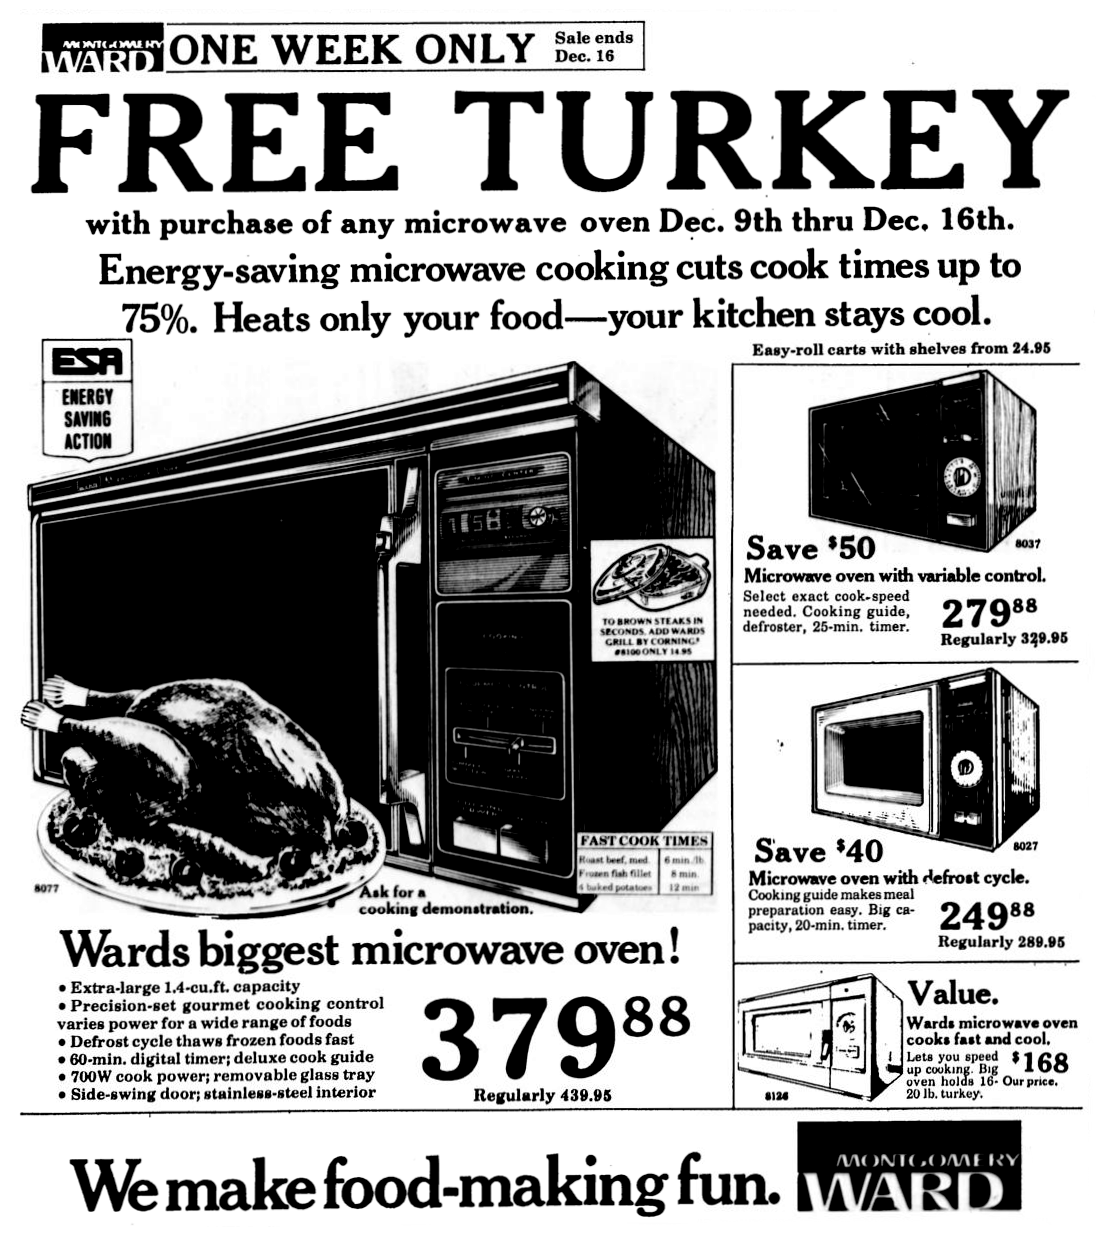 Montgomery Ward Microwave Ovens